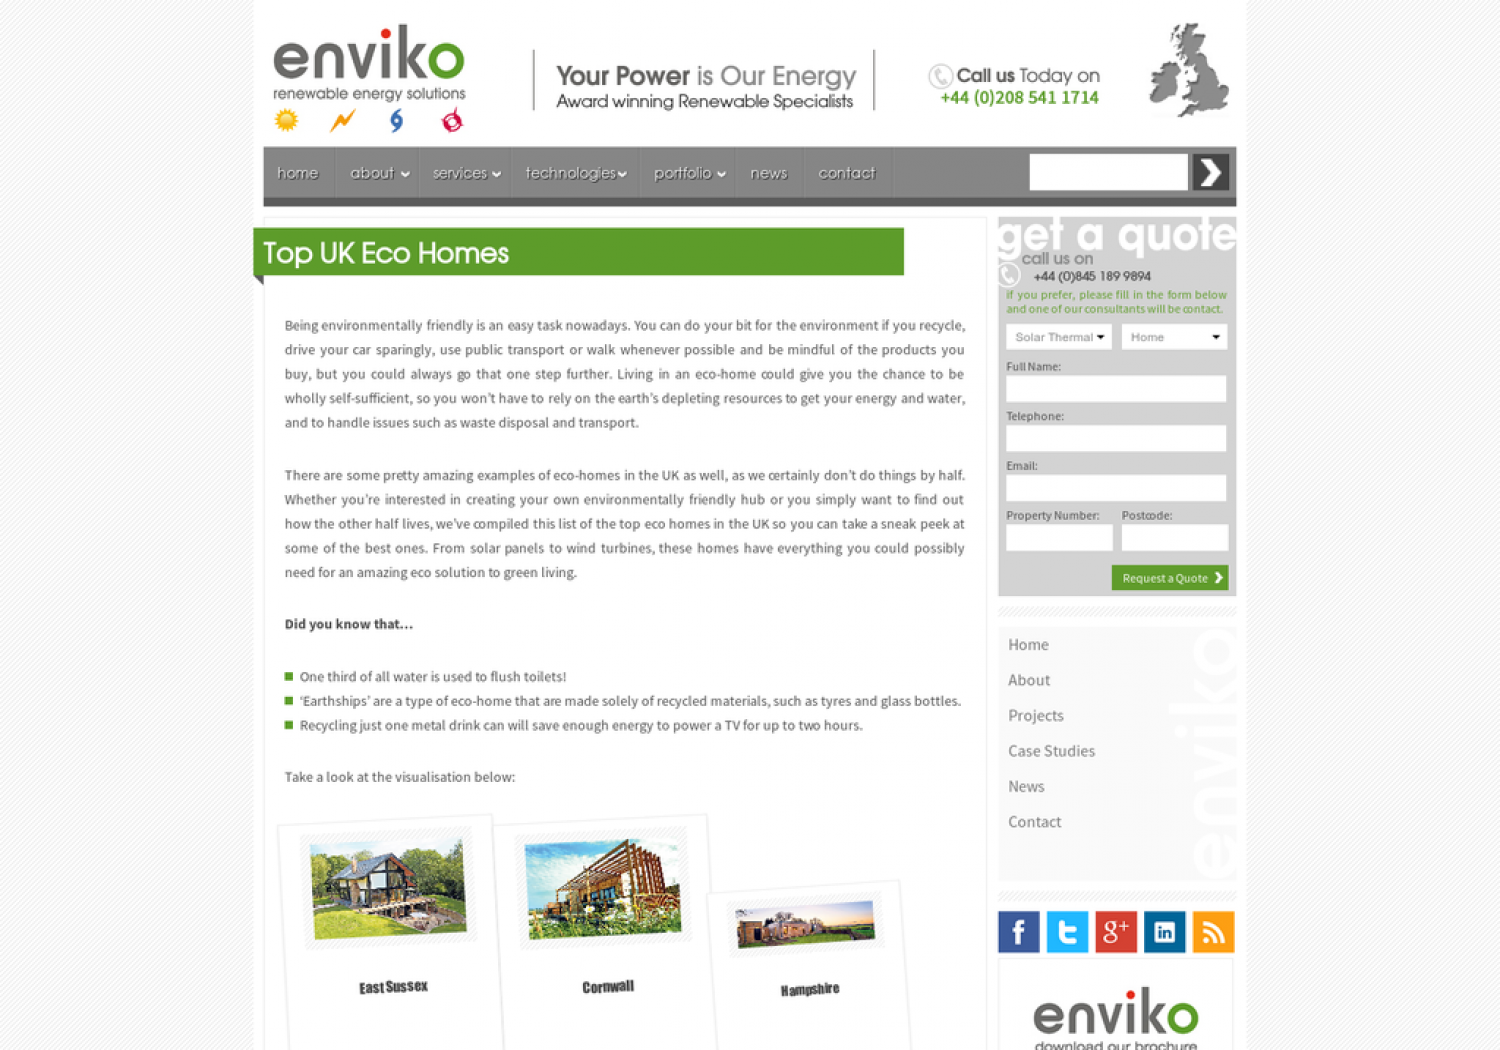 The Top UK Eco Homes Infographic